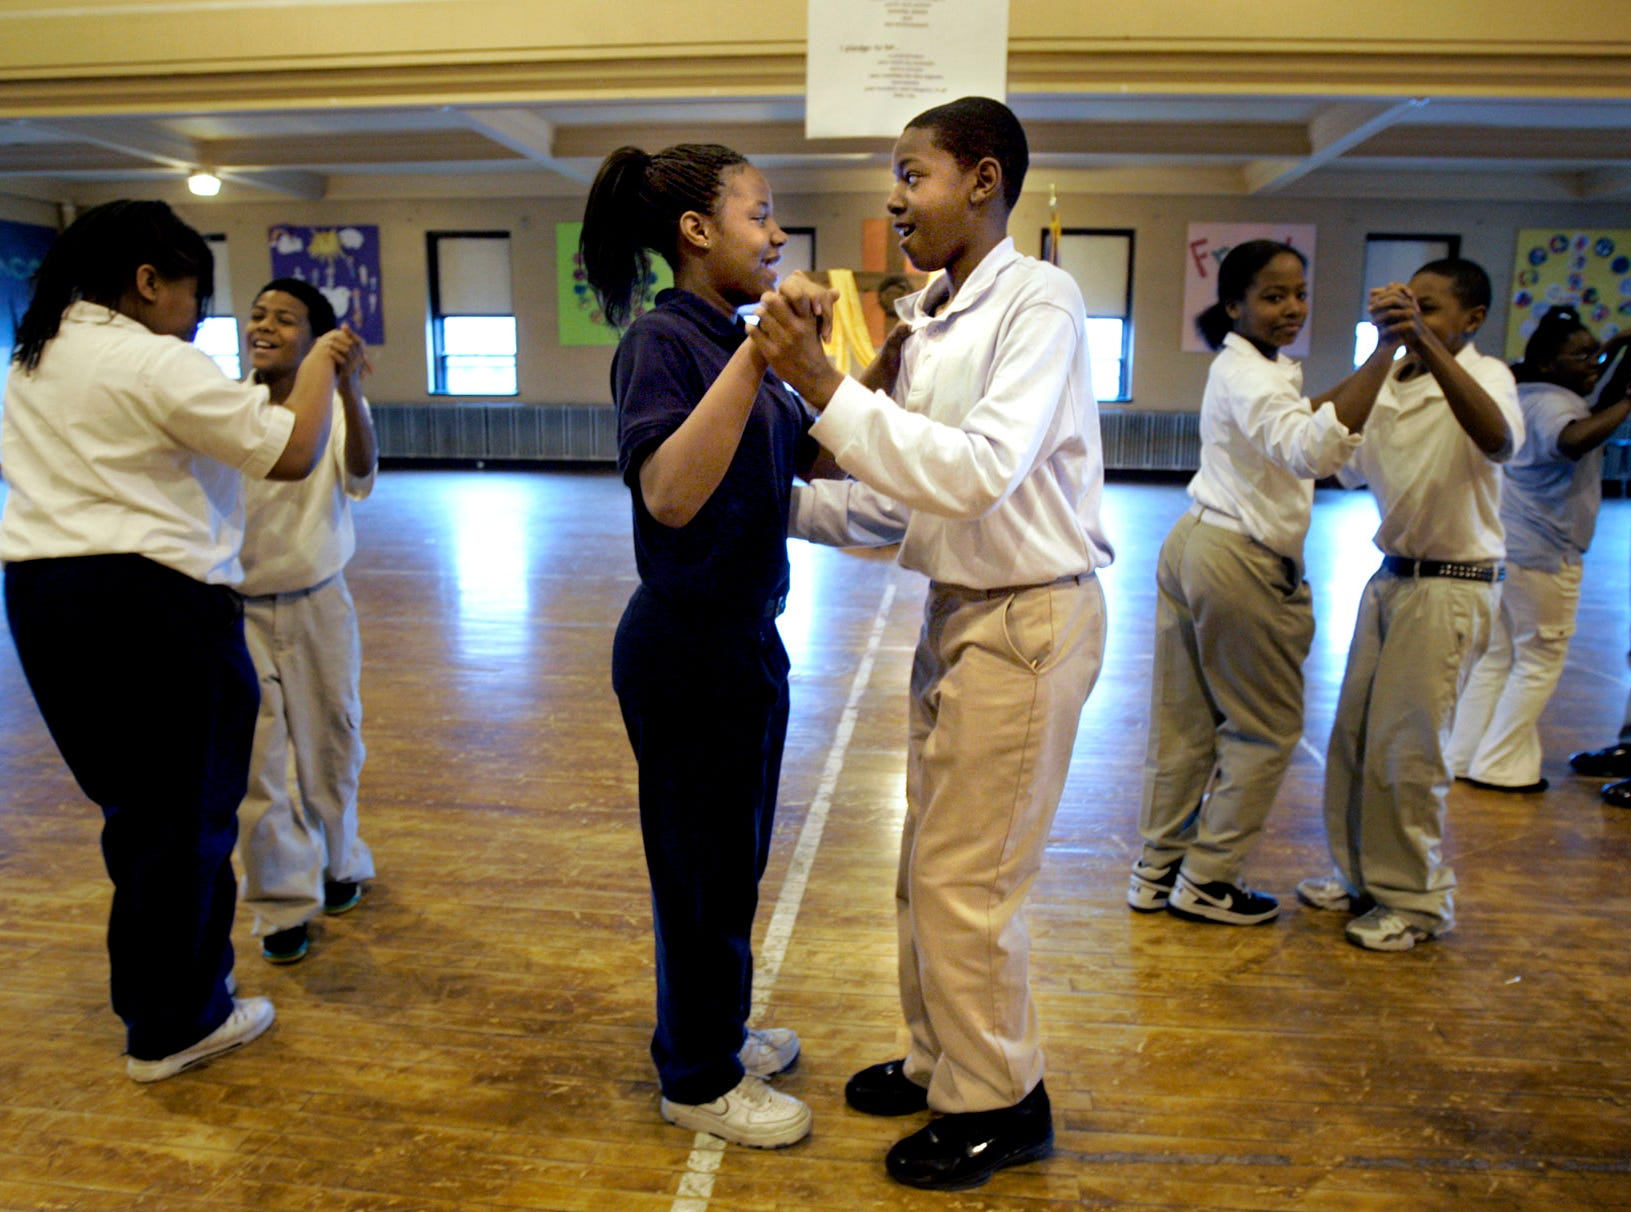 2017: St. Rose Catholic Urban Academy students Mishayla Jones, left, and her partner Jordan Miller practice their ballroom dancing on April 25, 2007. The Mad Hot Ballroom project, started 8 months ago, is  organized locally by Danceworks Performance Company and originally involved 25 Milwaukee schools.